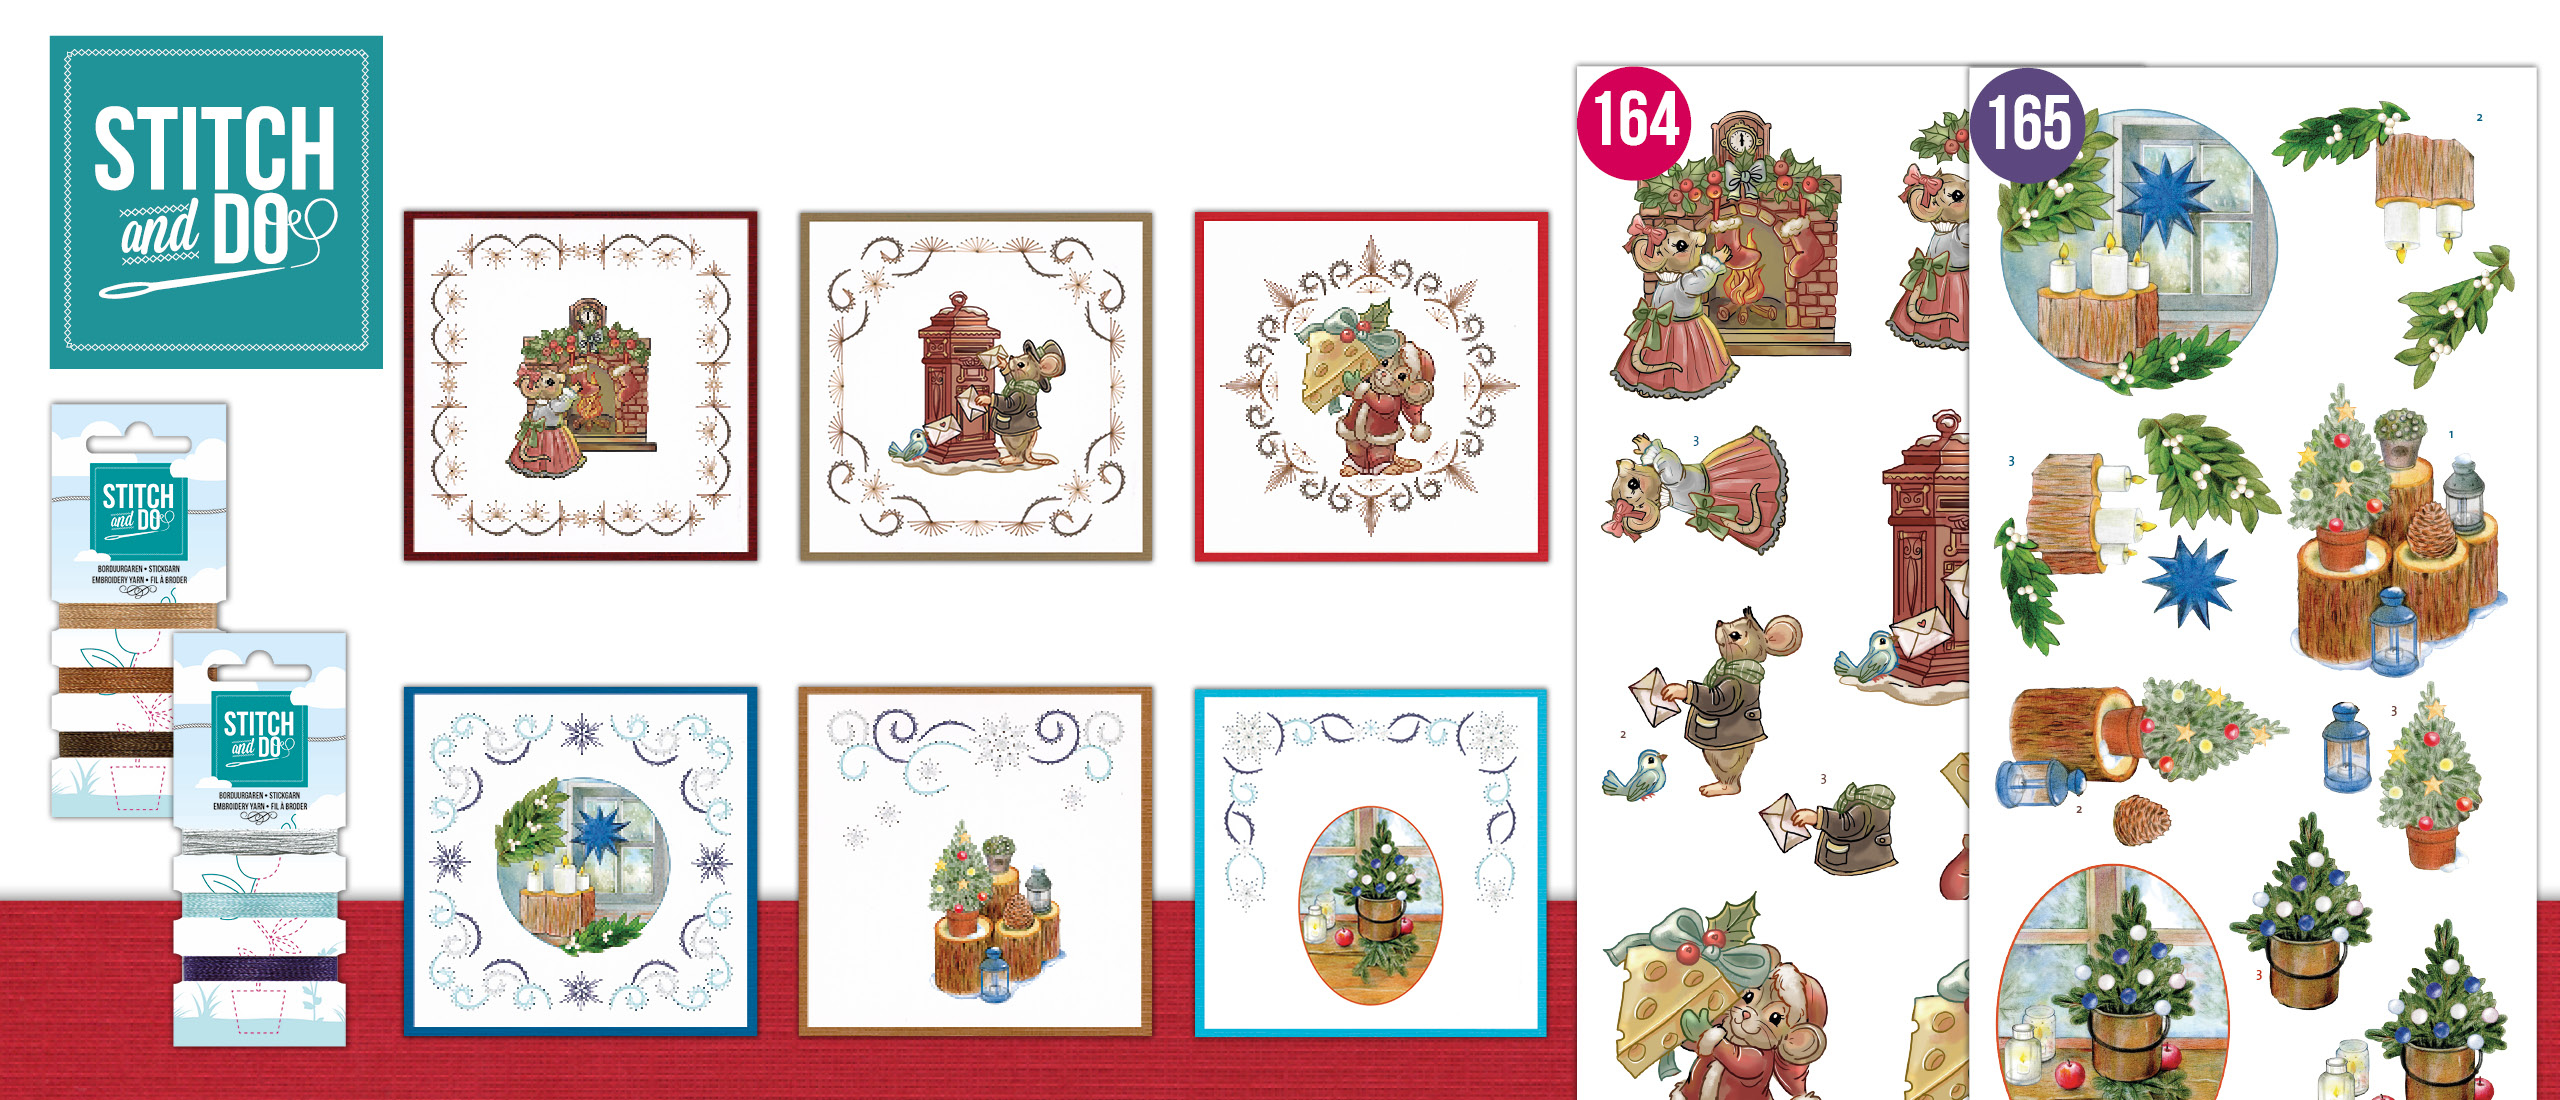 Stitch and Do 164 en 165 Christmas Cottage - Have a Mice Christmas